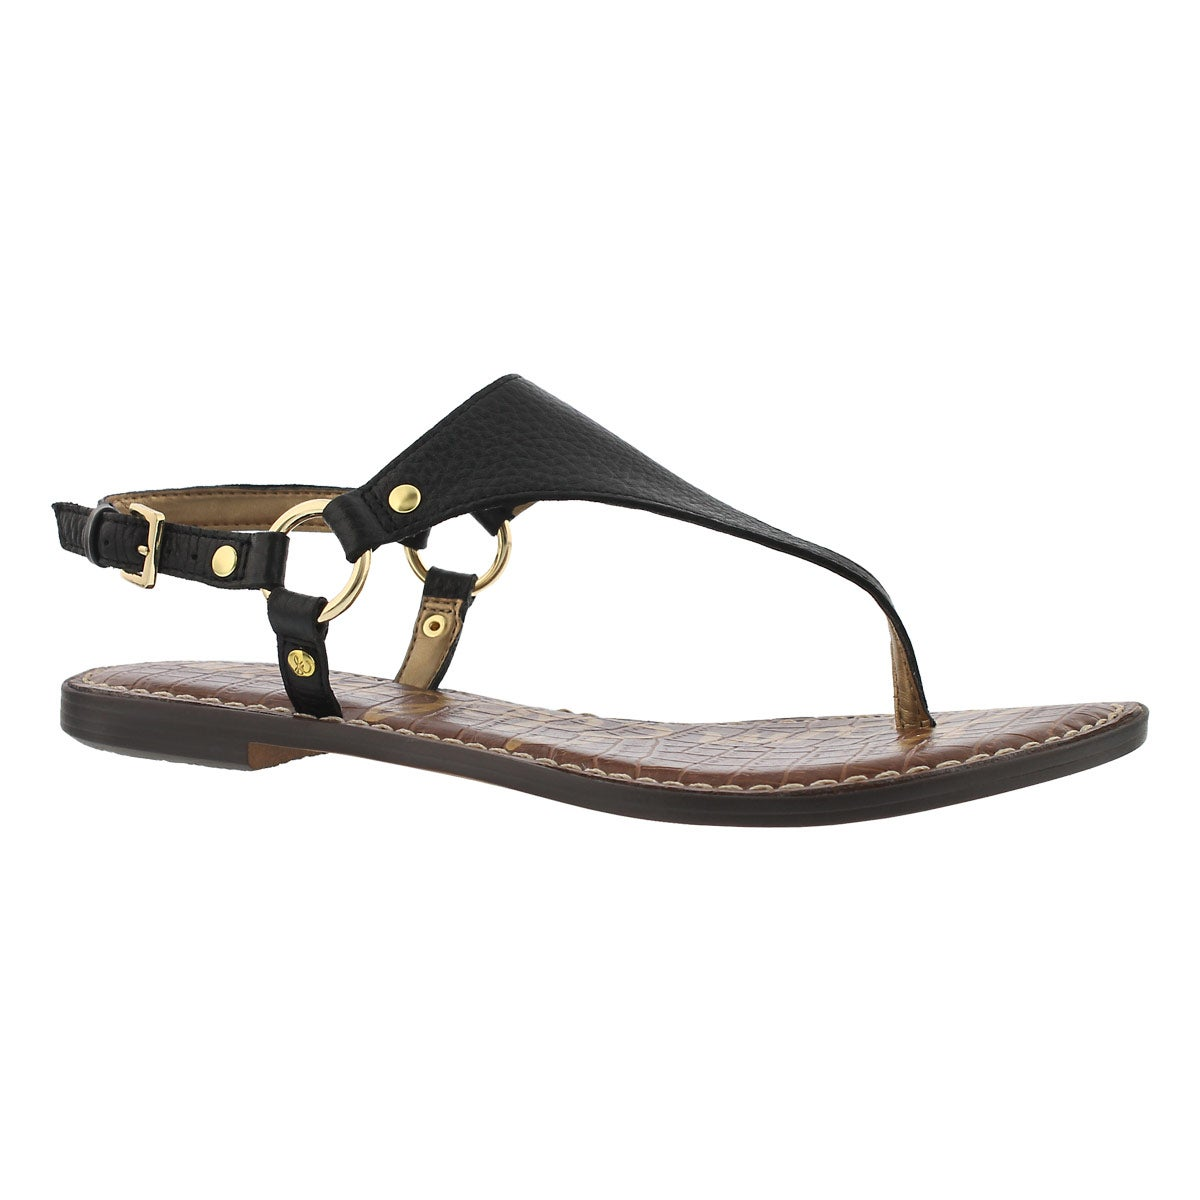 Women's GRETA black casual thong sandals